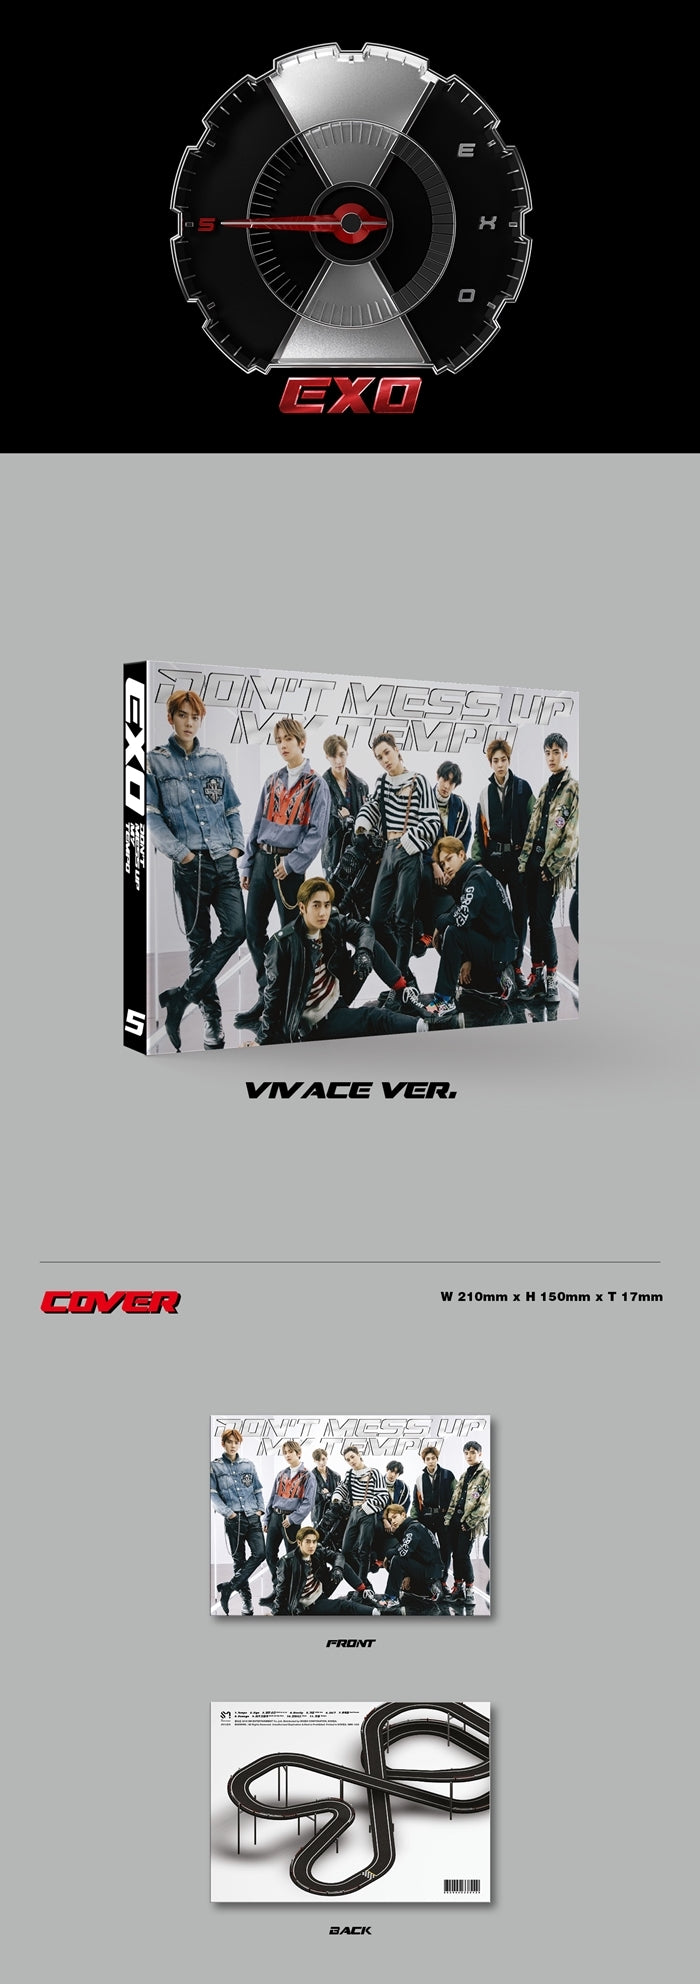 EXO - Don't Mess Up My Tempo - Vivace Version - Jetzt lieferbar